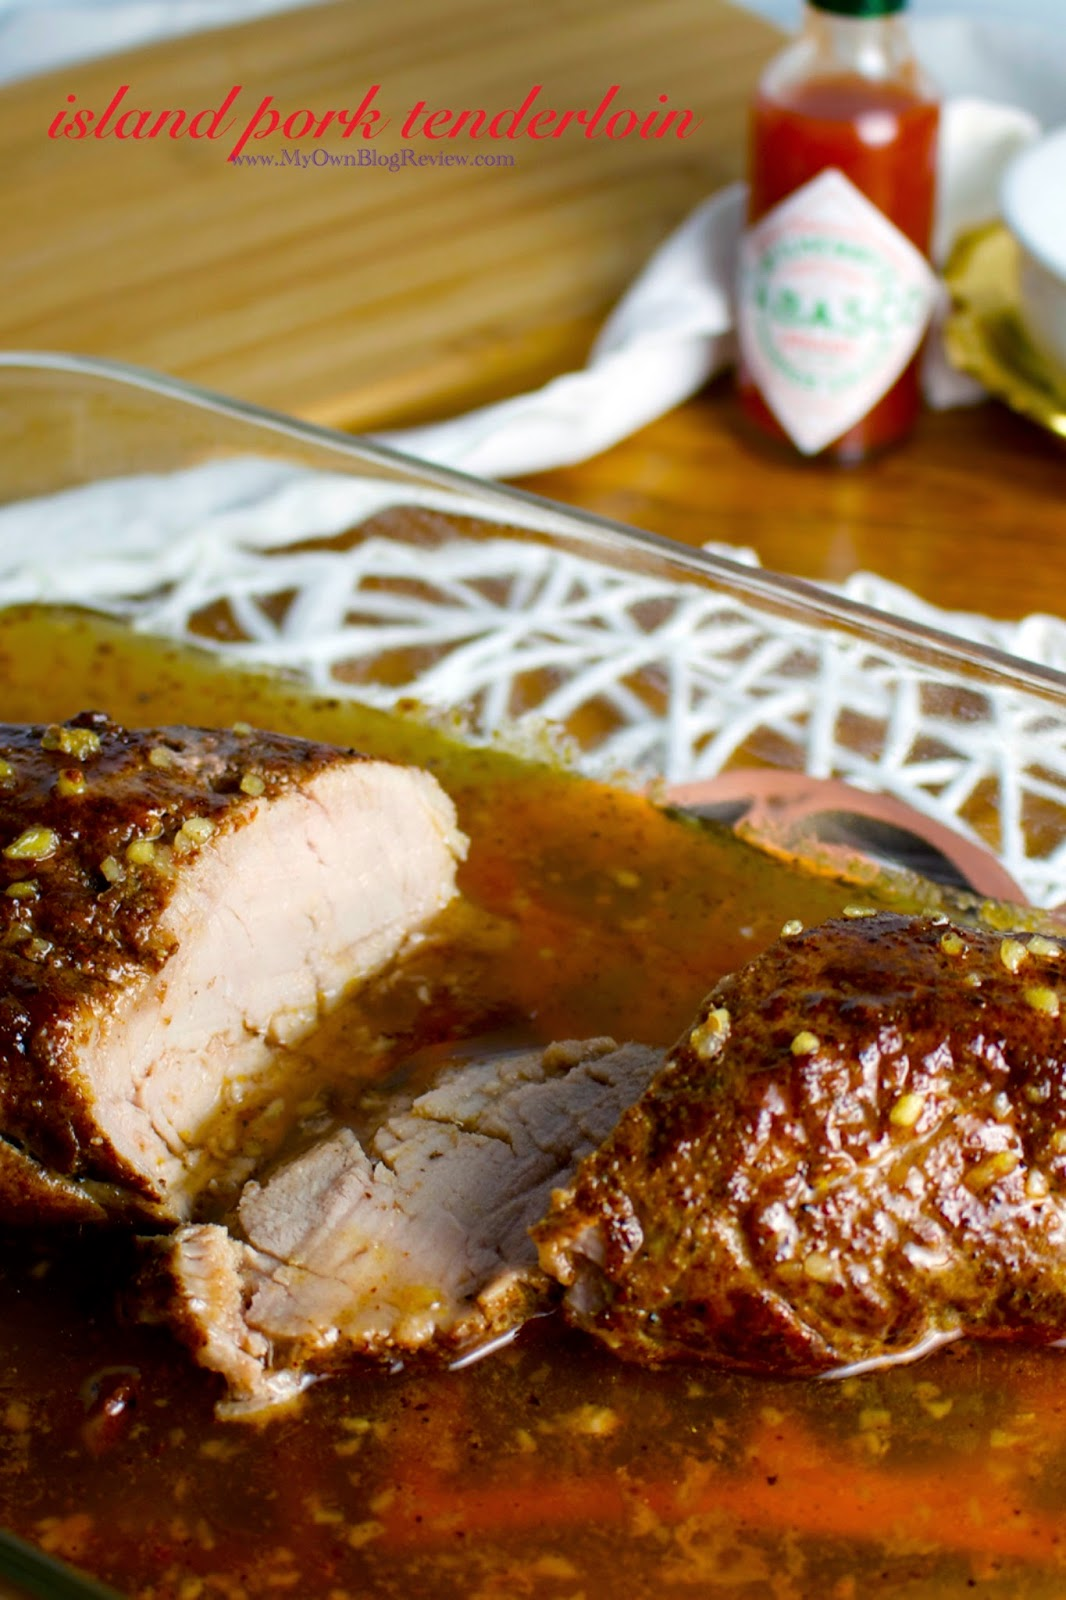 Island Pork Tenderloin. Sweet with a little bit of heat! My 3-1/2 year old ate it, so don't be scared of the tabasco sauce. This is so good! ~ My Own Blog Review